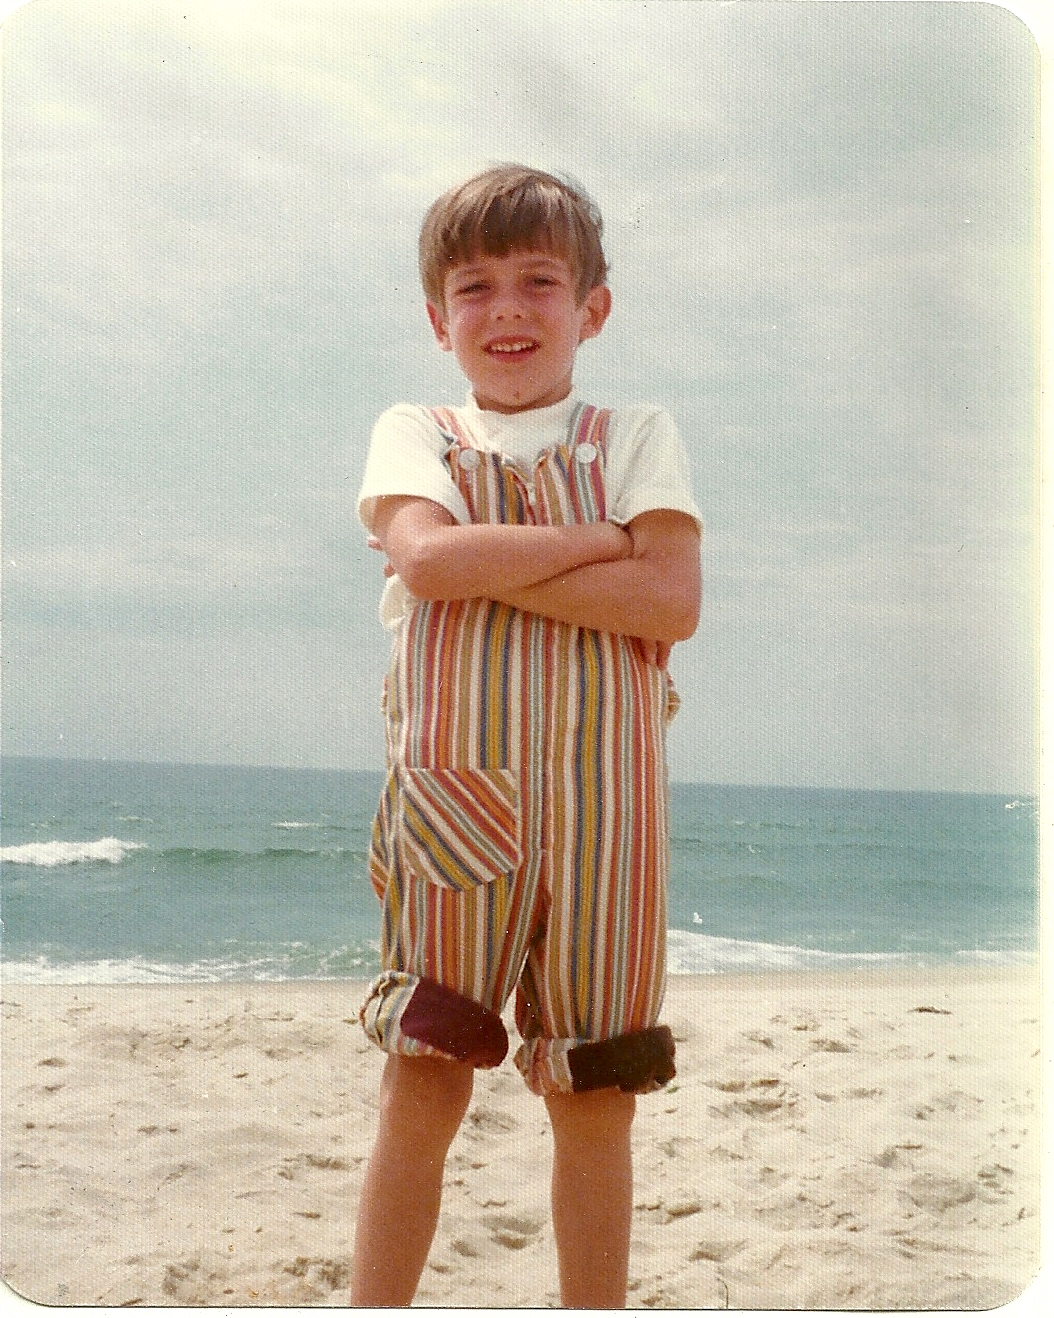 1973 i m wearing coveralls because i m still in diapers at age 7